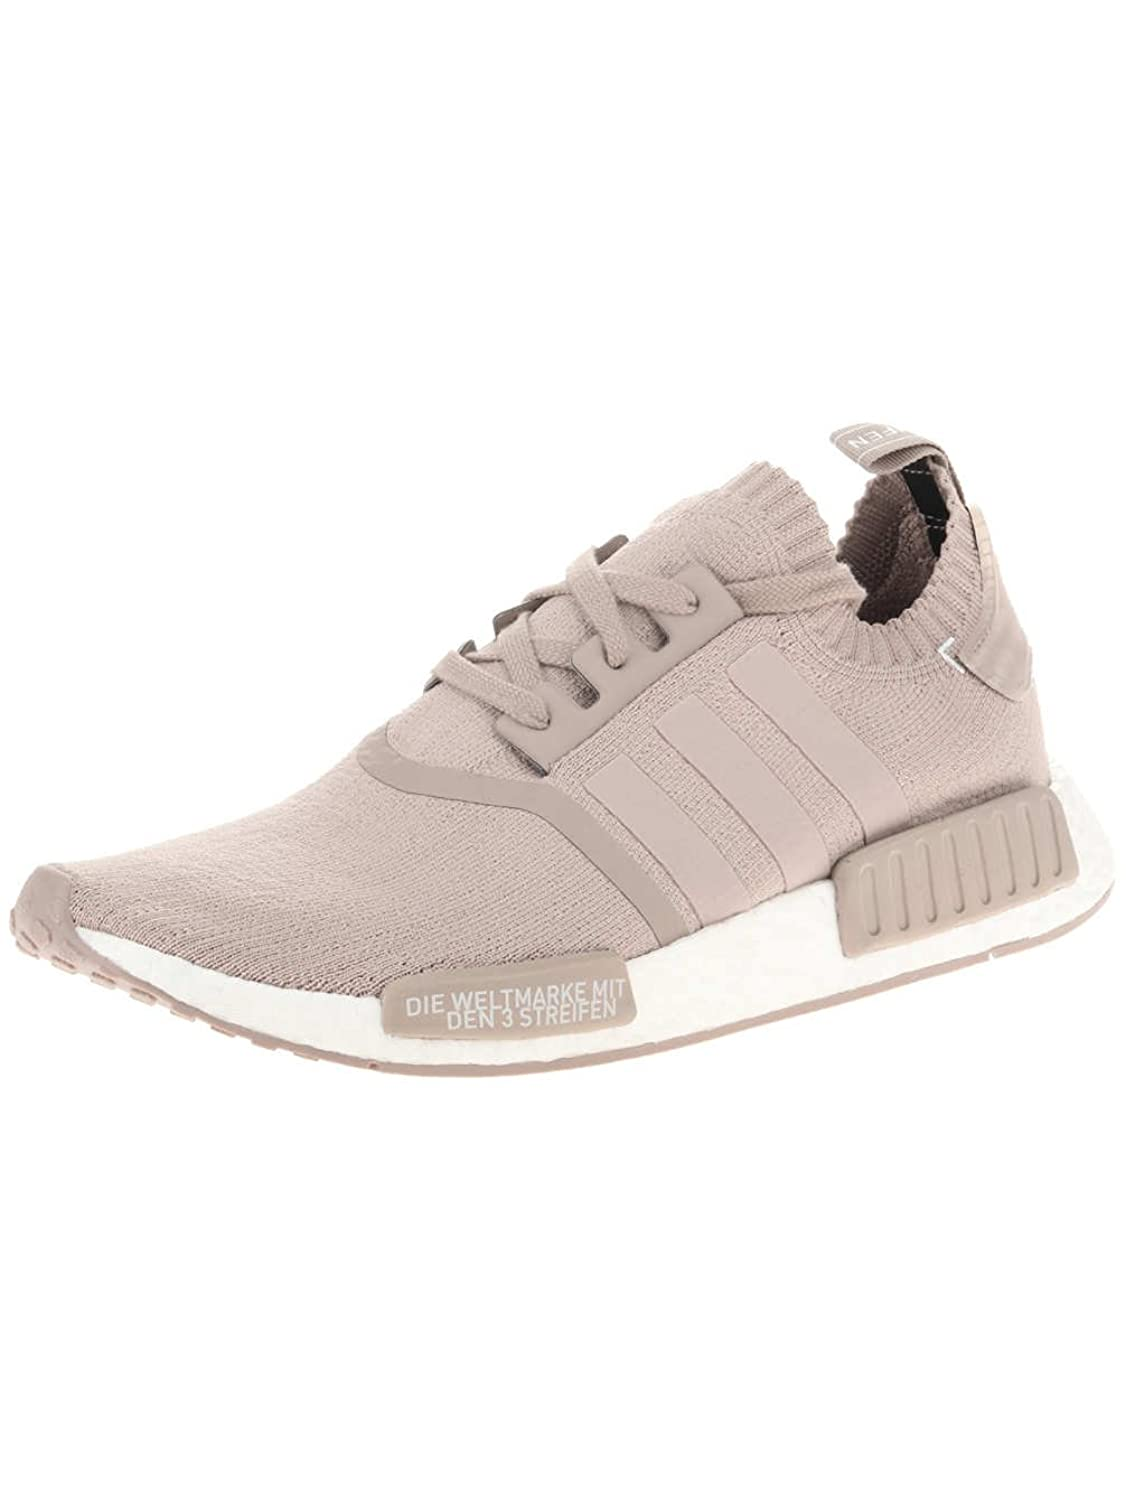 reputable site 5d09f 8d6dc Amazon.com | Mens Adidas NMD R1 PK French Beige Vapor Grey ...